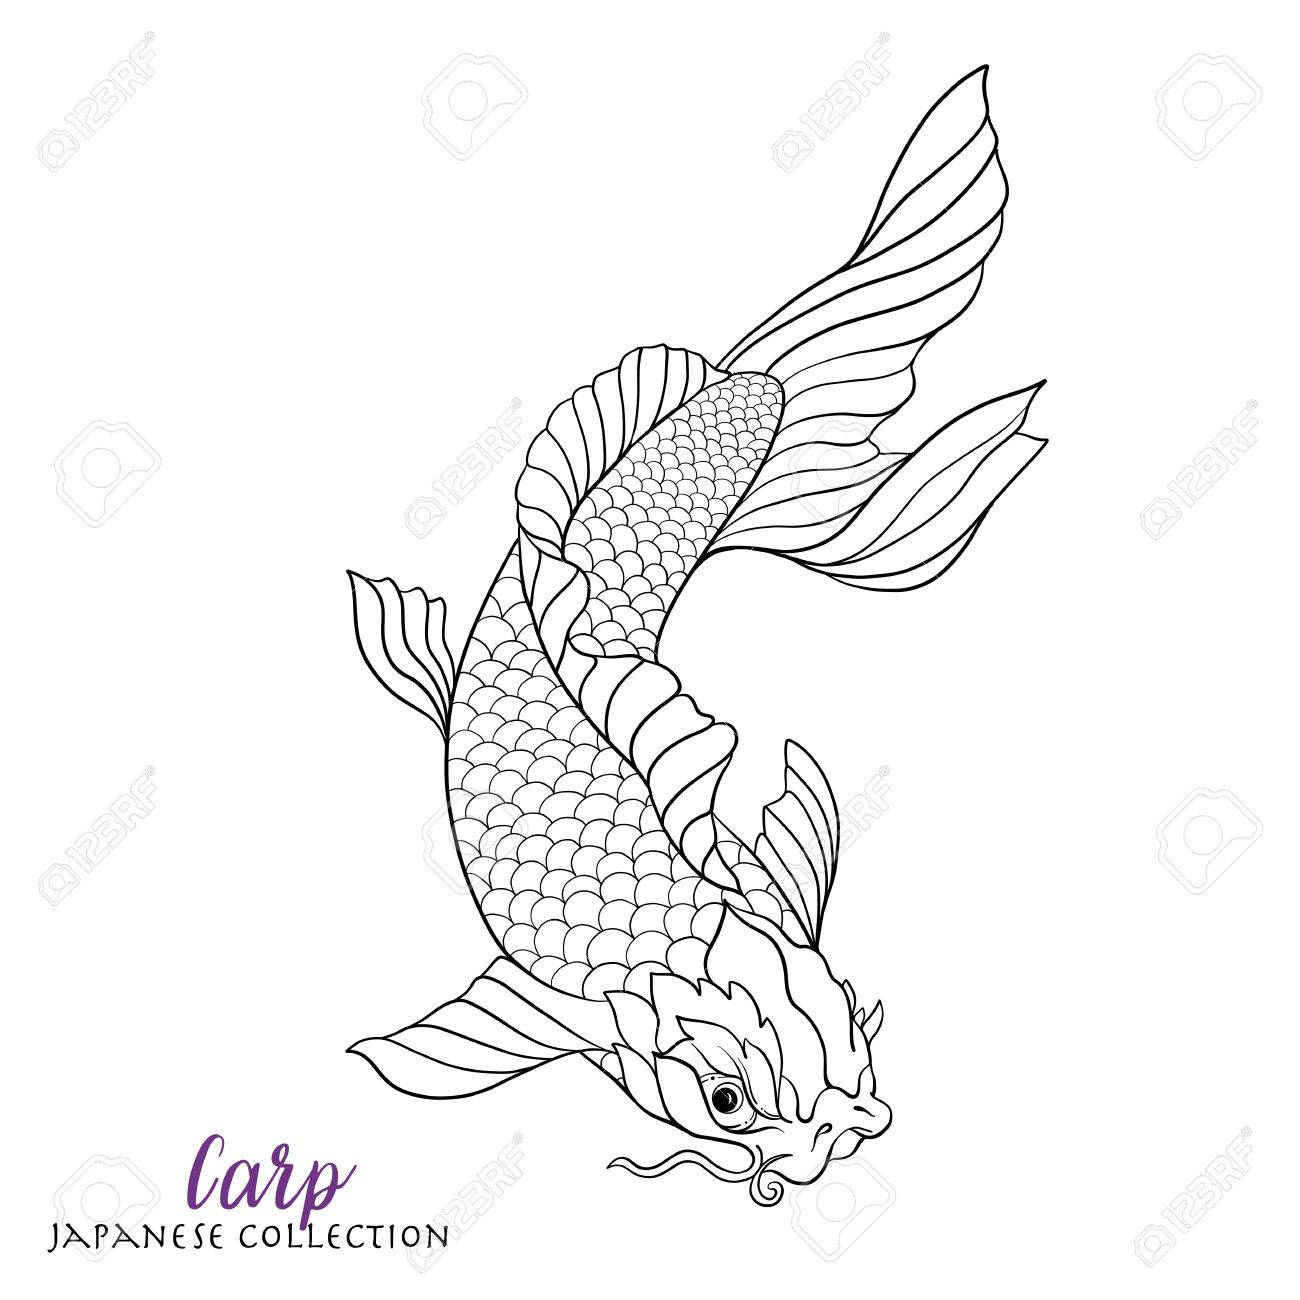 1300x1300 Japanese Carp Fish. Coloring Book For Adult. Outline Drawing